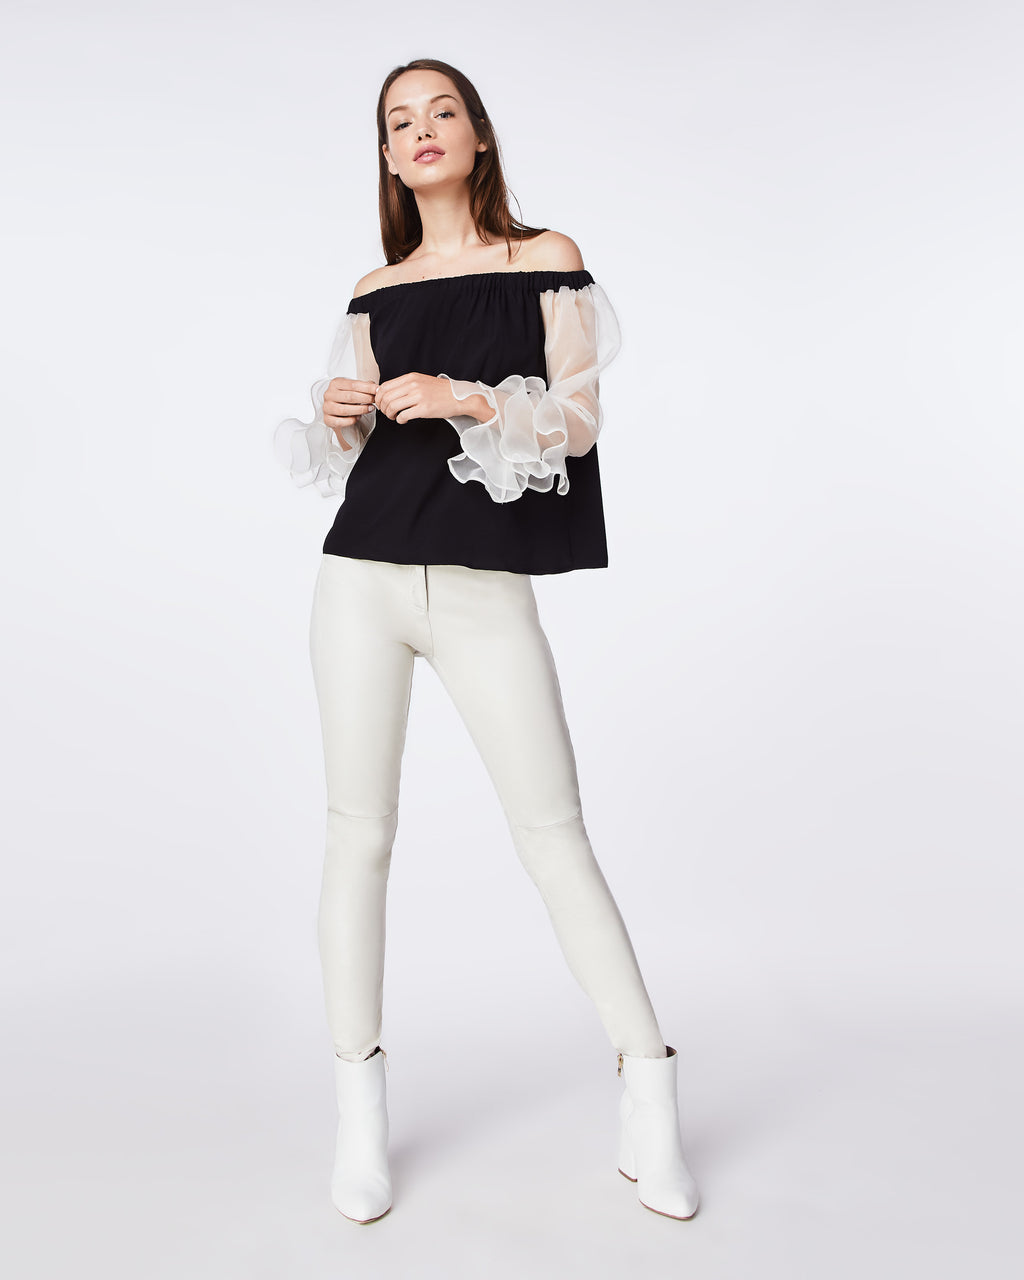 BK10277 - ORGANZA AND CHARMEUSE BLEND OFF THE SHOULDER TOP - tops - shirts - A FEMININE OFF THE SHOULDER TOP THAT FEATURES RUFFLE SLEEVES. IT HAS AN ELASTIC SHOULDER BAND FOR A COMFORTABLE, CHIC FIT.